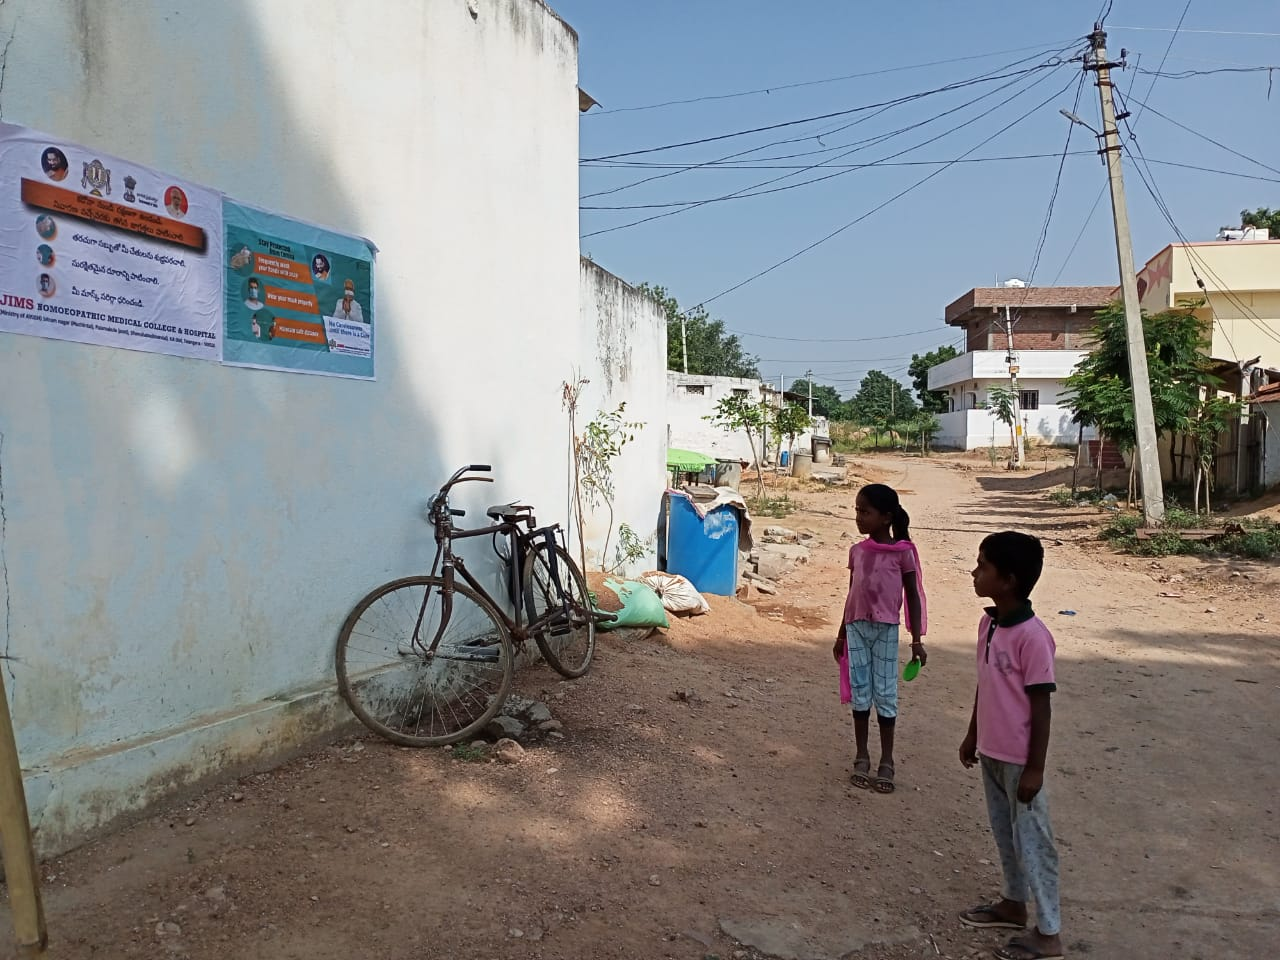 Janandolan campaign on COVID 19 – IEC Poster sticking at Manchan padu village. This is another hamlet village of Modallaguda panchayath